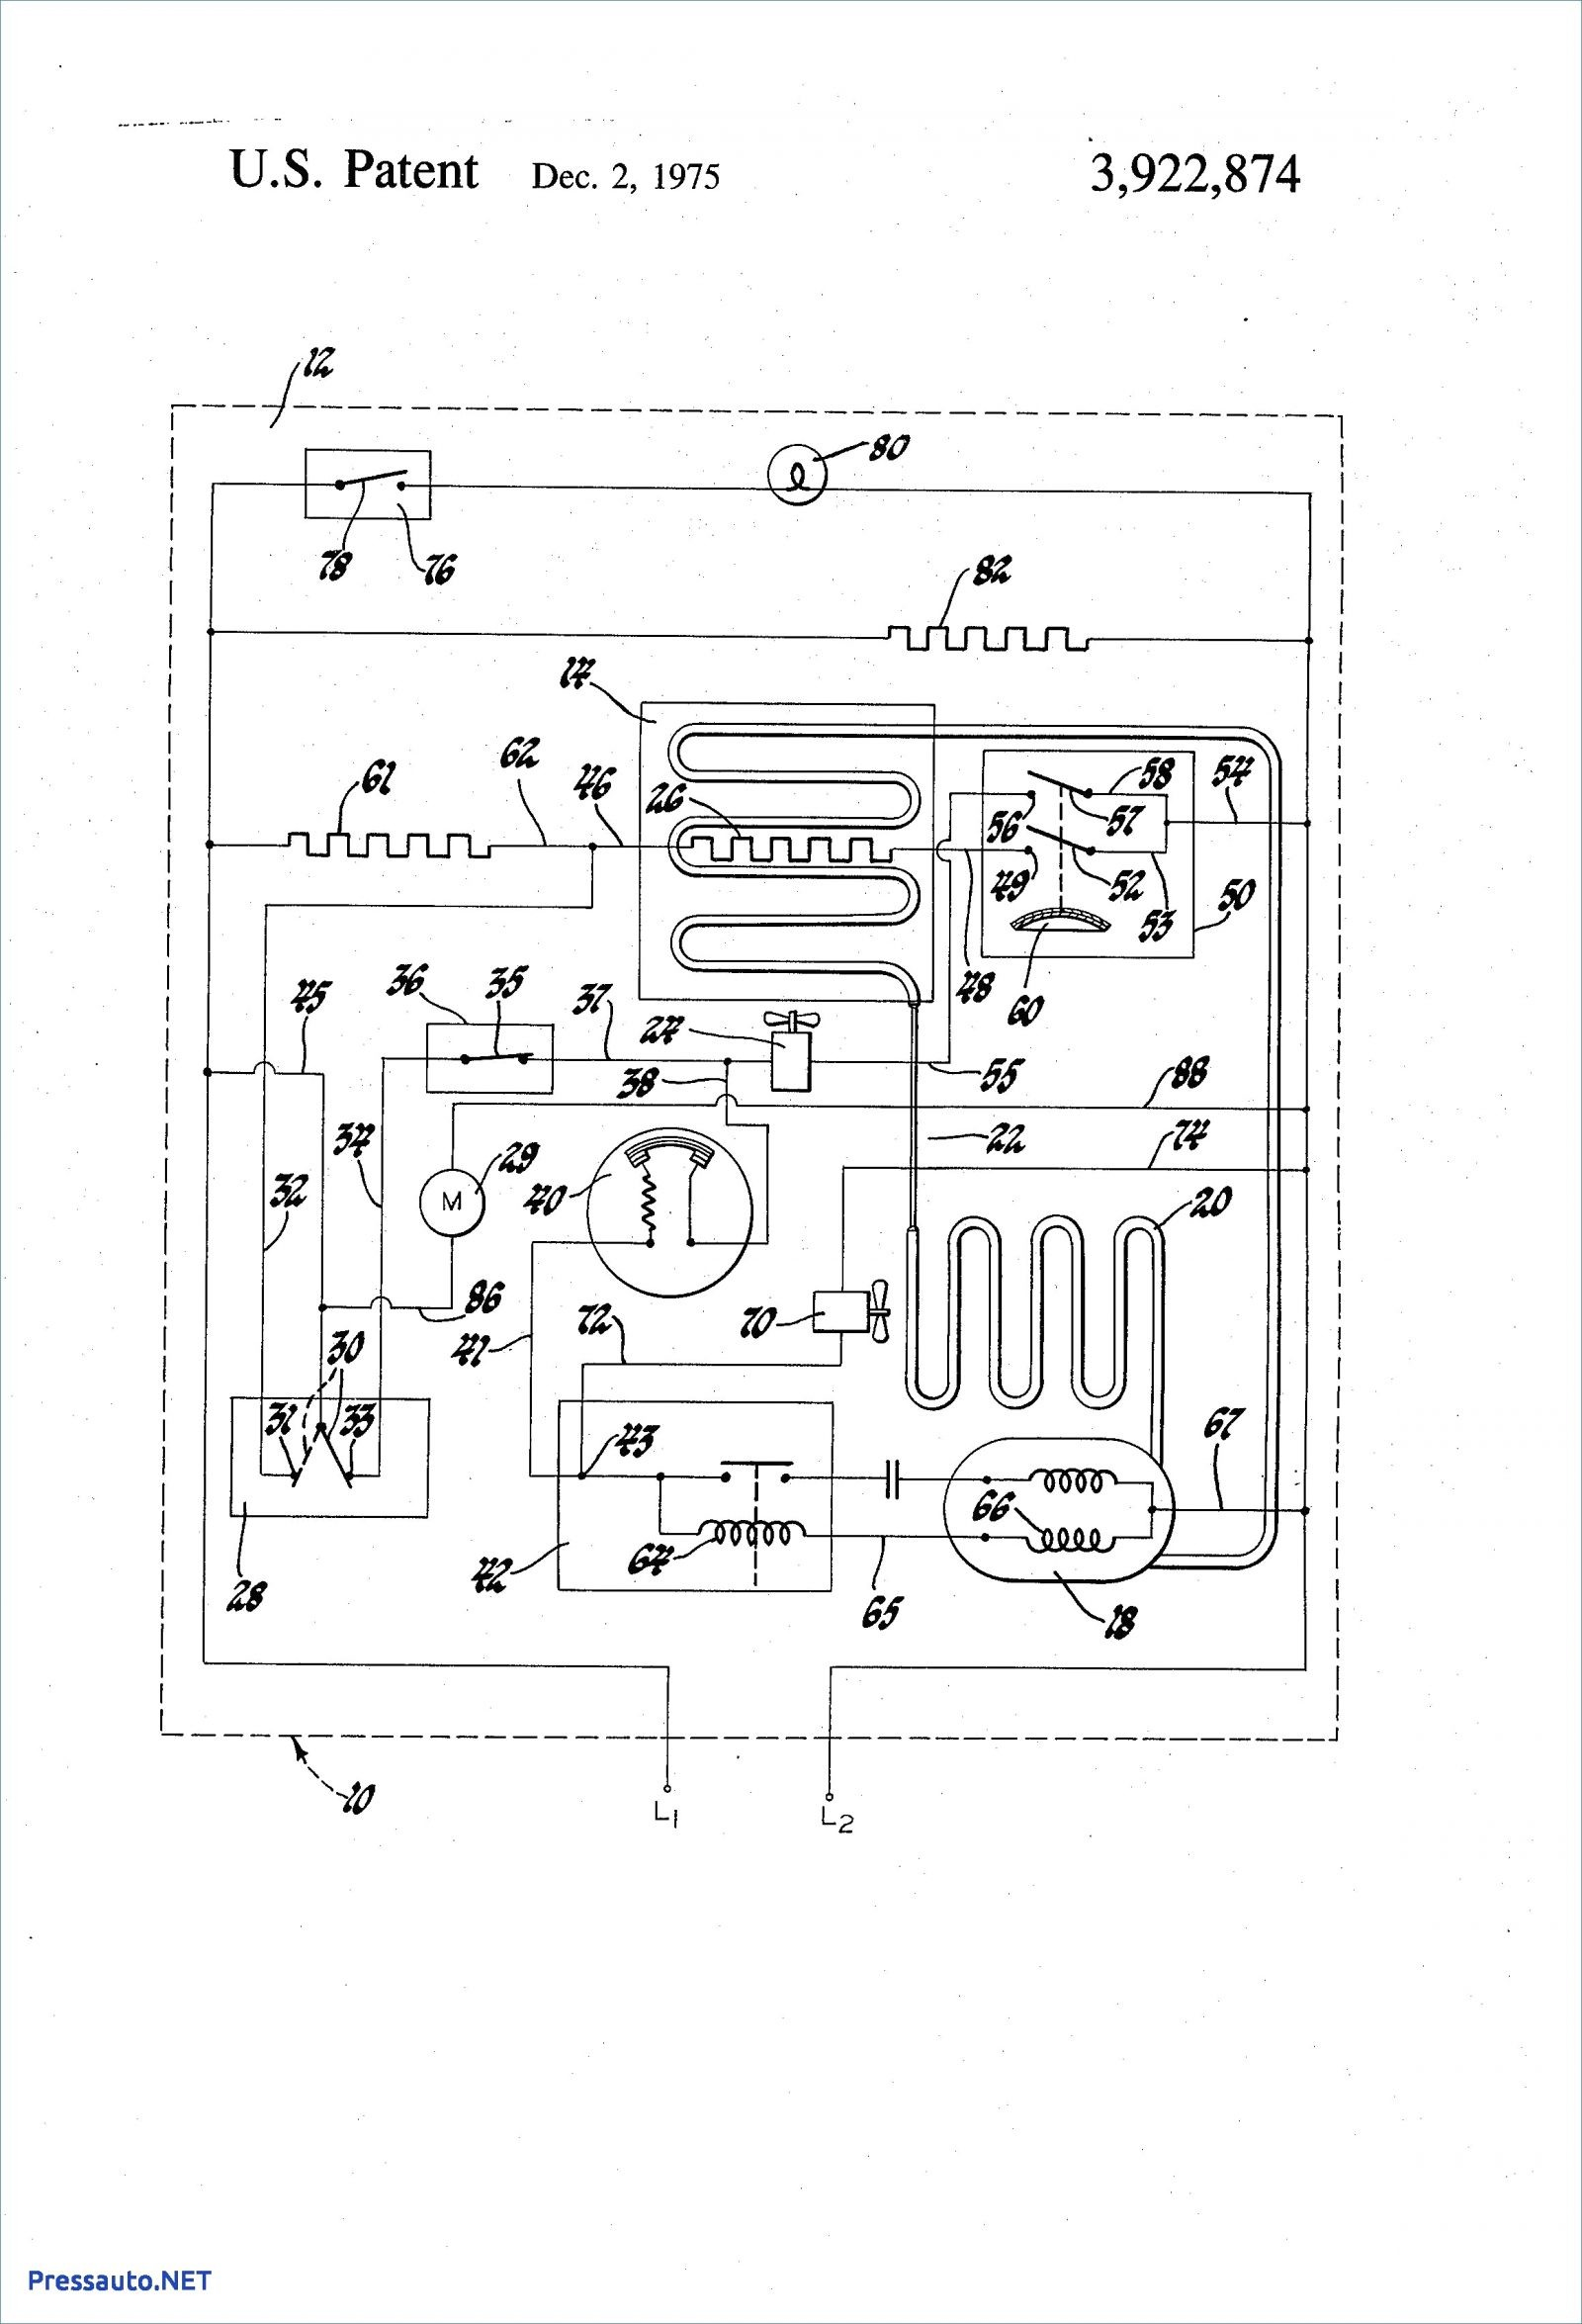 Beckett Pump Wiring Diagram - Block And Schematic Diagrams • on furnace fan motor wiring, furnace schematic diagram, furnace parts diagram, goodman wiring diagram, trane wiring diagram, evcon wiring diagram, time delay relay wiring diagram, gas furnace diagram, general electric wiring diagram, electric furnace diagram, how furnace works diagram, honeywell wiring diagram, fan wiring diagram, furnace transformer diagram, lennox wiring diagram, janitrol heat pump wiring diagram, transformer wiring diagram, thermostat wiring diagram, intercity products wiring diagram, furnace wiring color code,